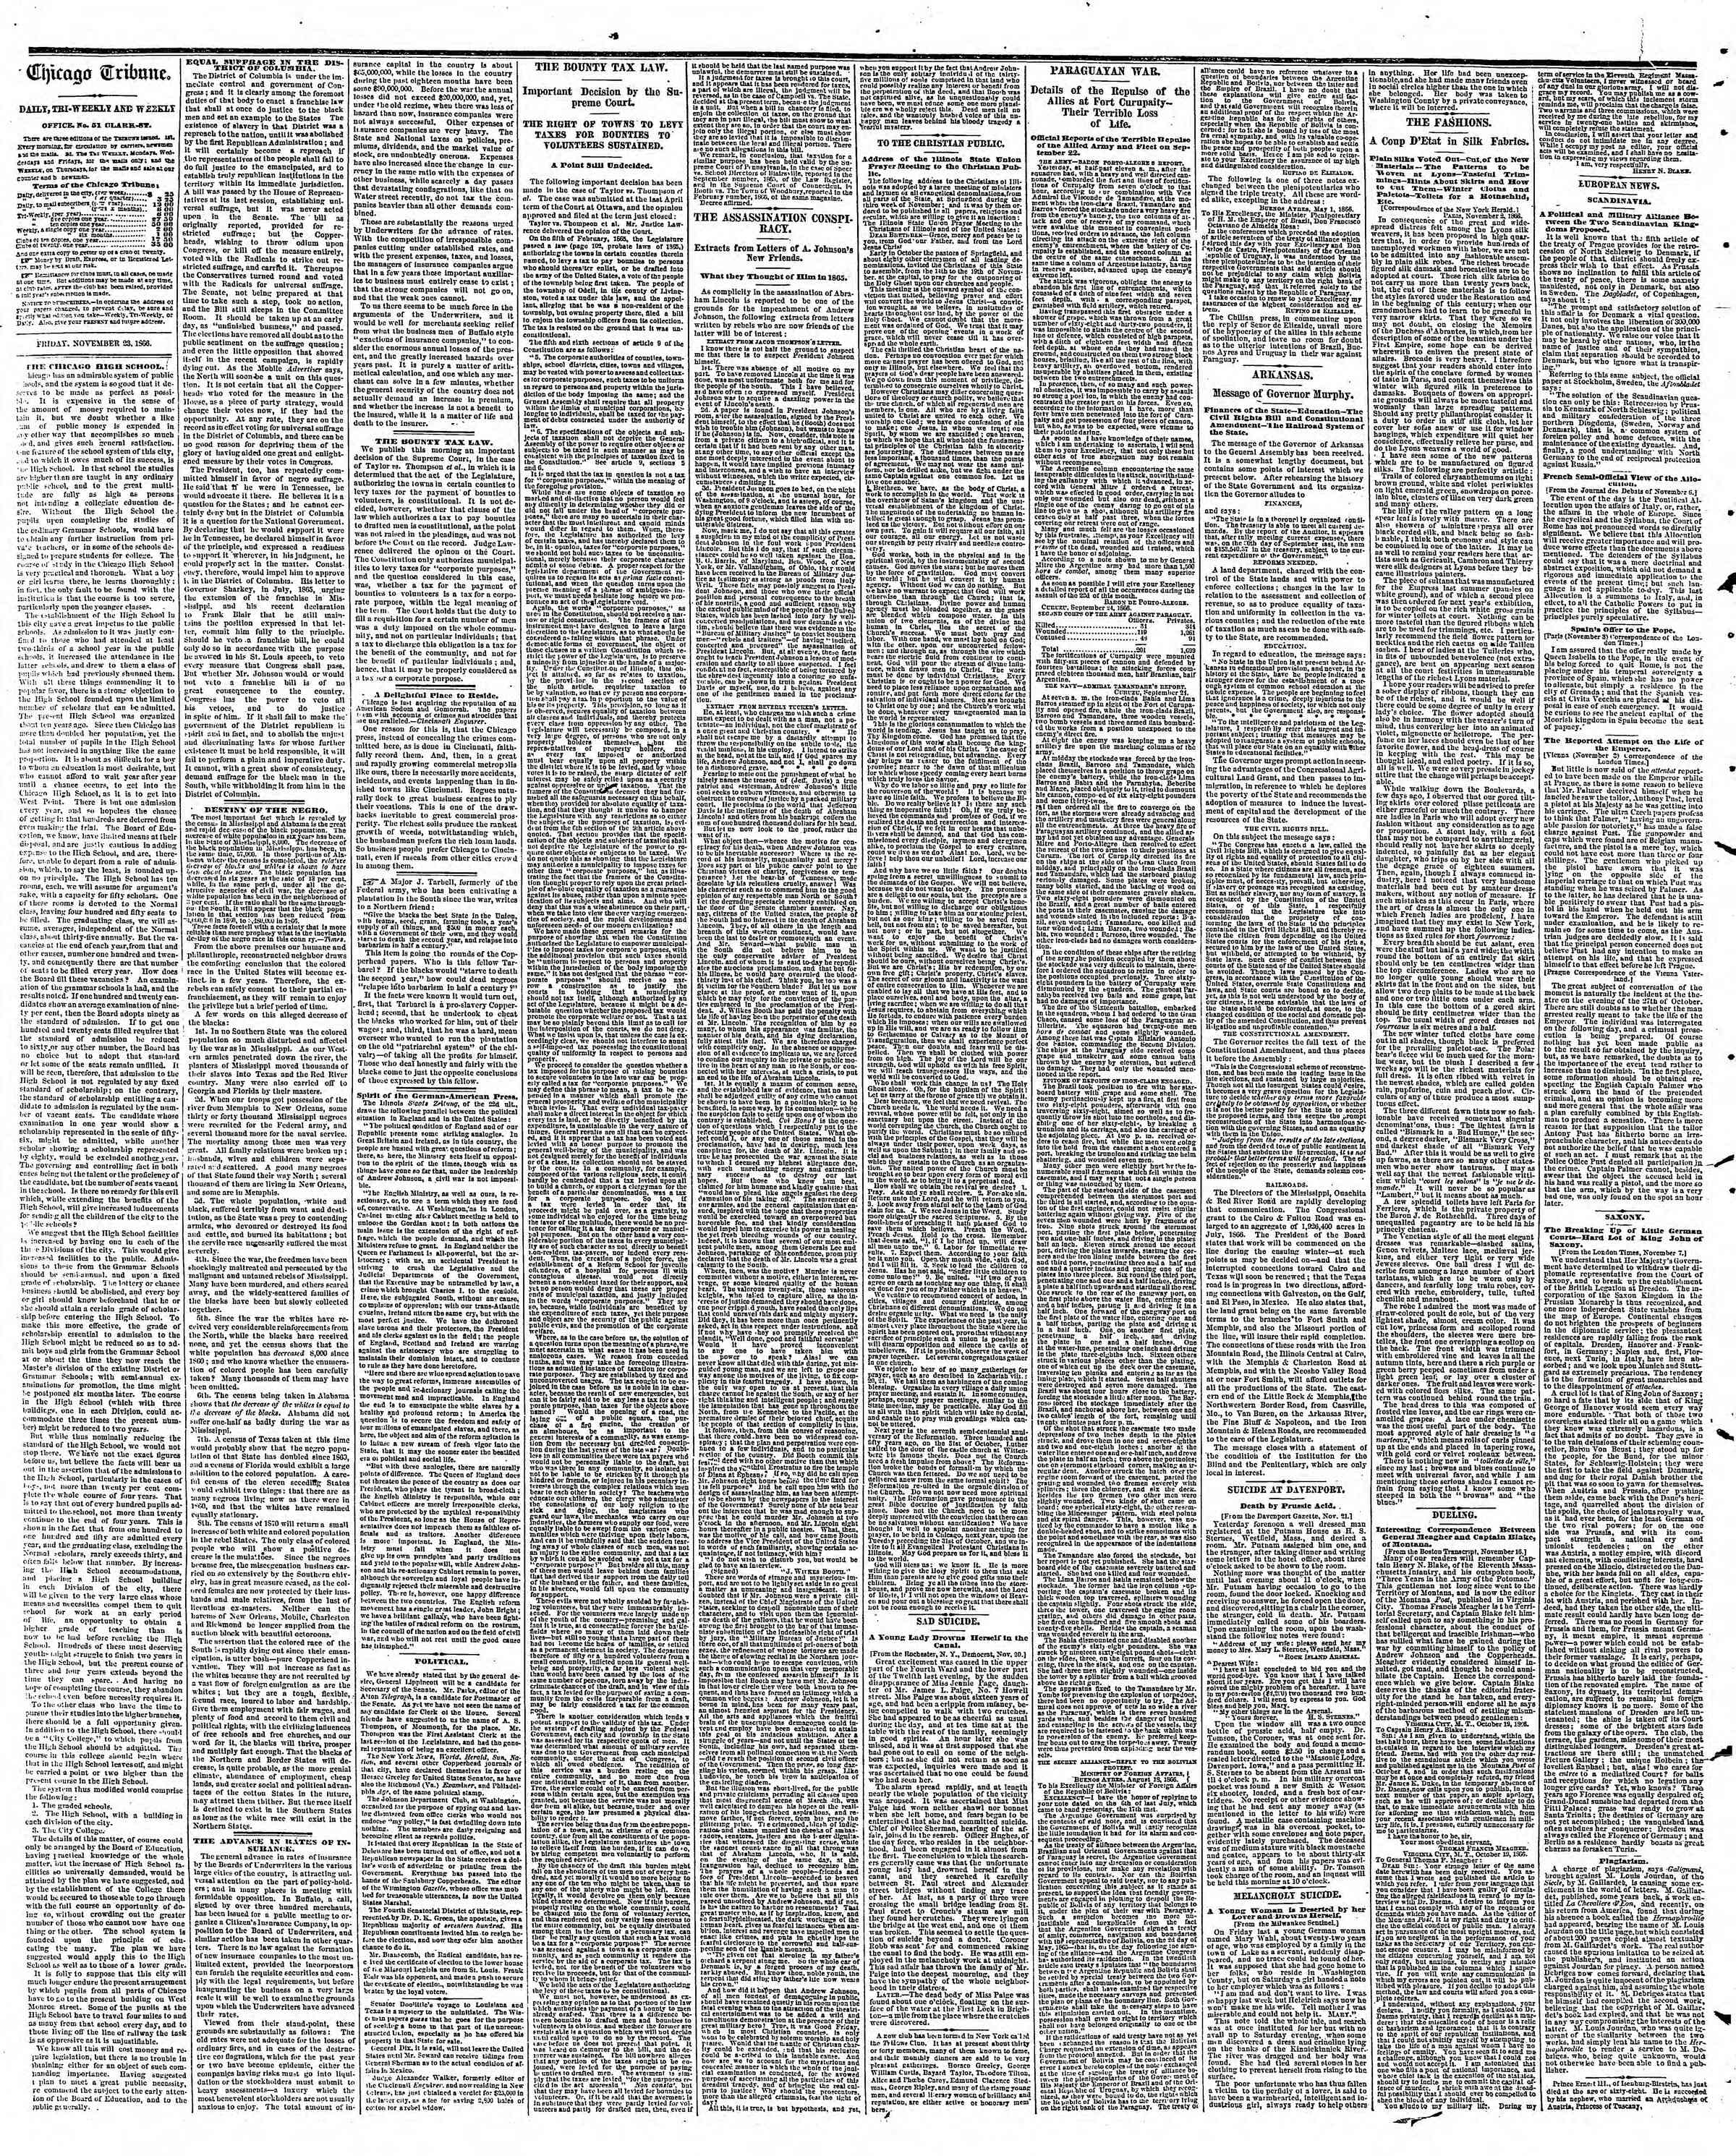 Newspaper of The Chicago Tribune dated November 23, 1866 Page 2